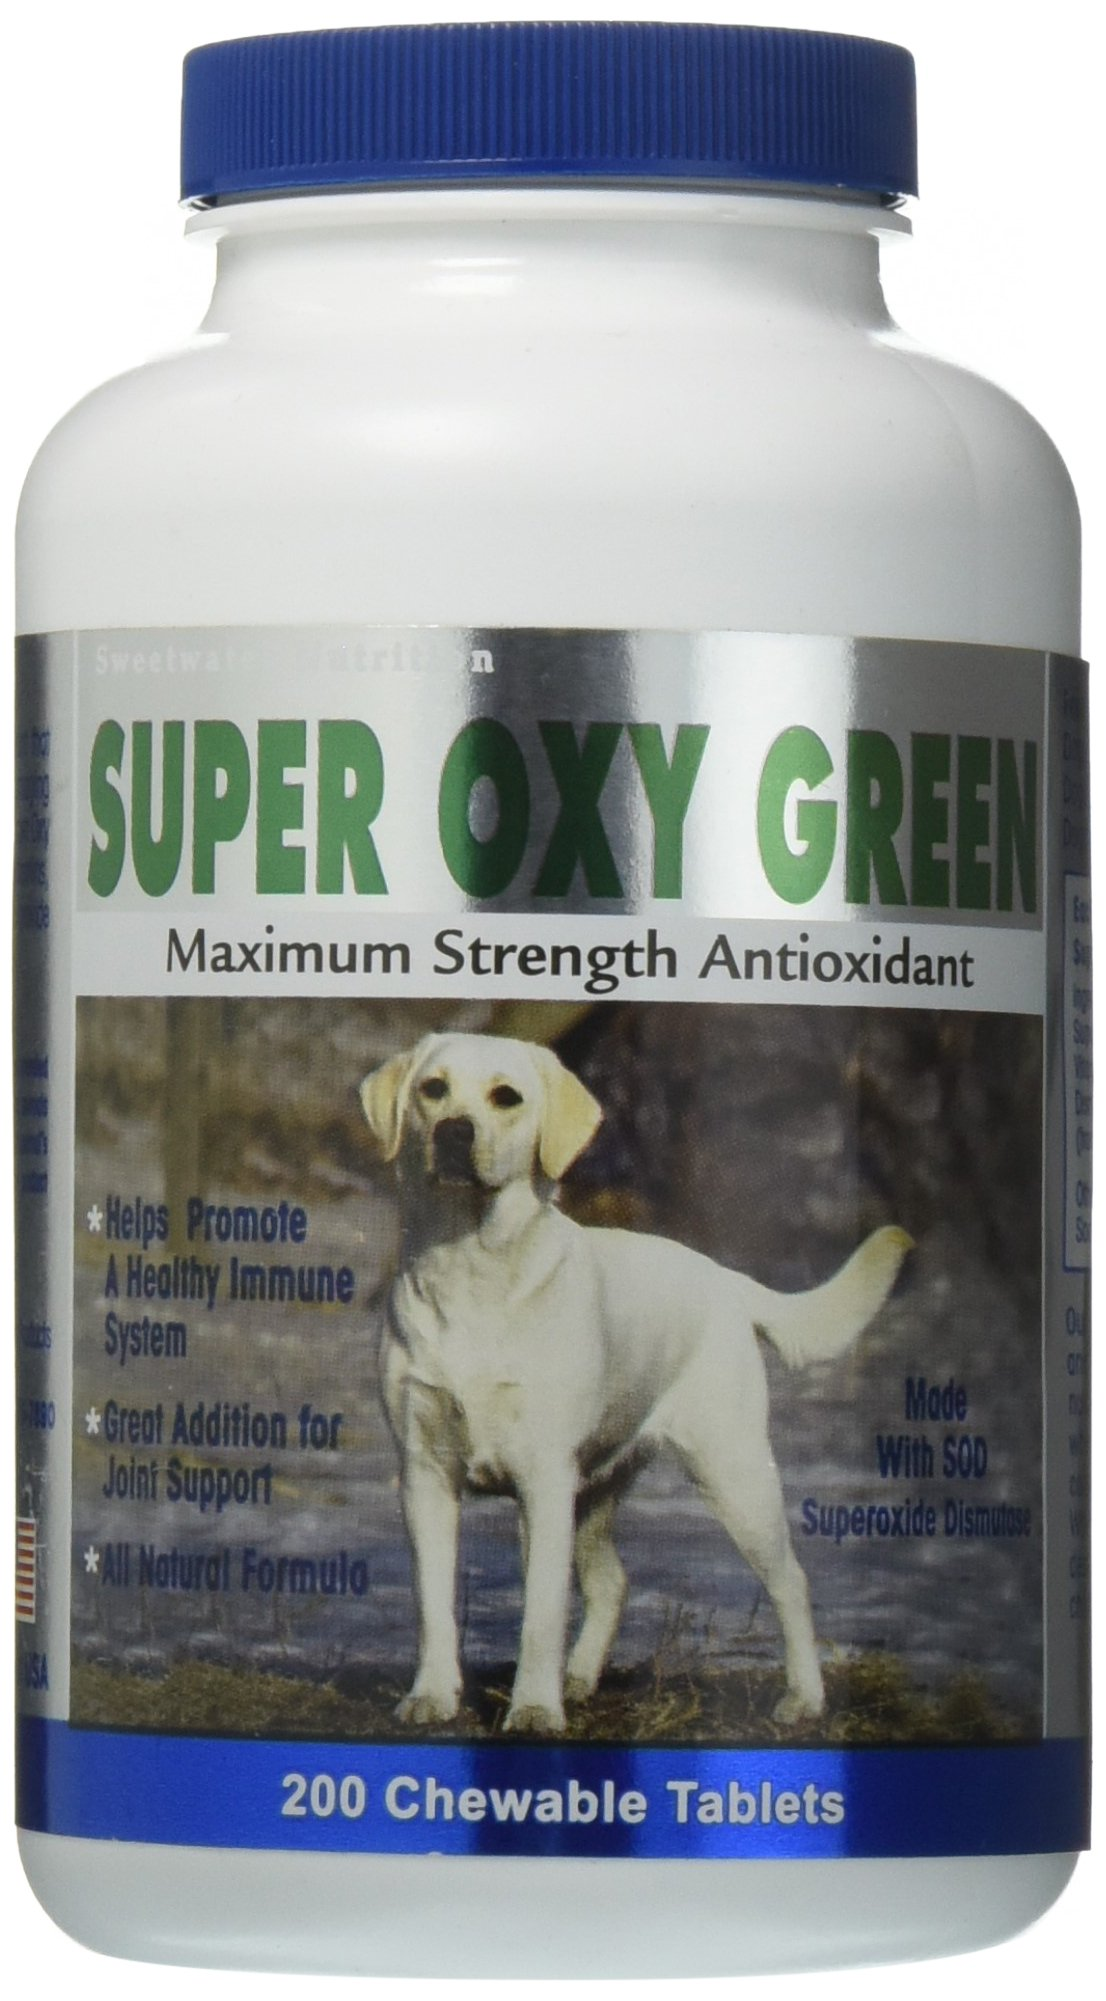 Super Oxy Green Maximum Strength Antioxidants for Dogs - 200 Count by KR Naturals